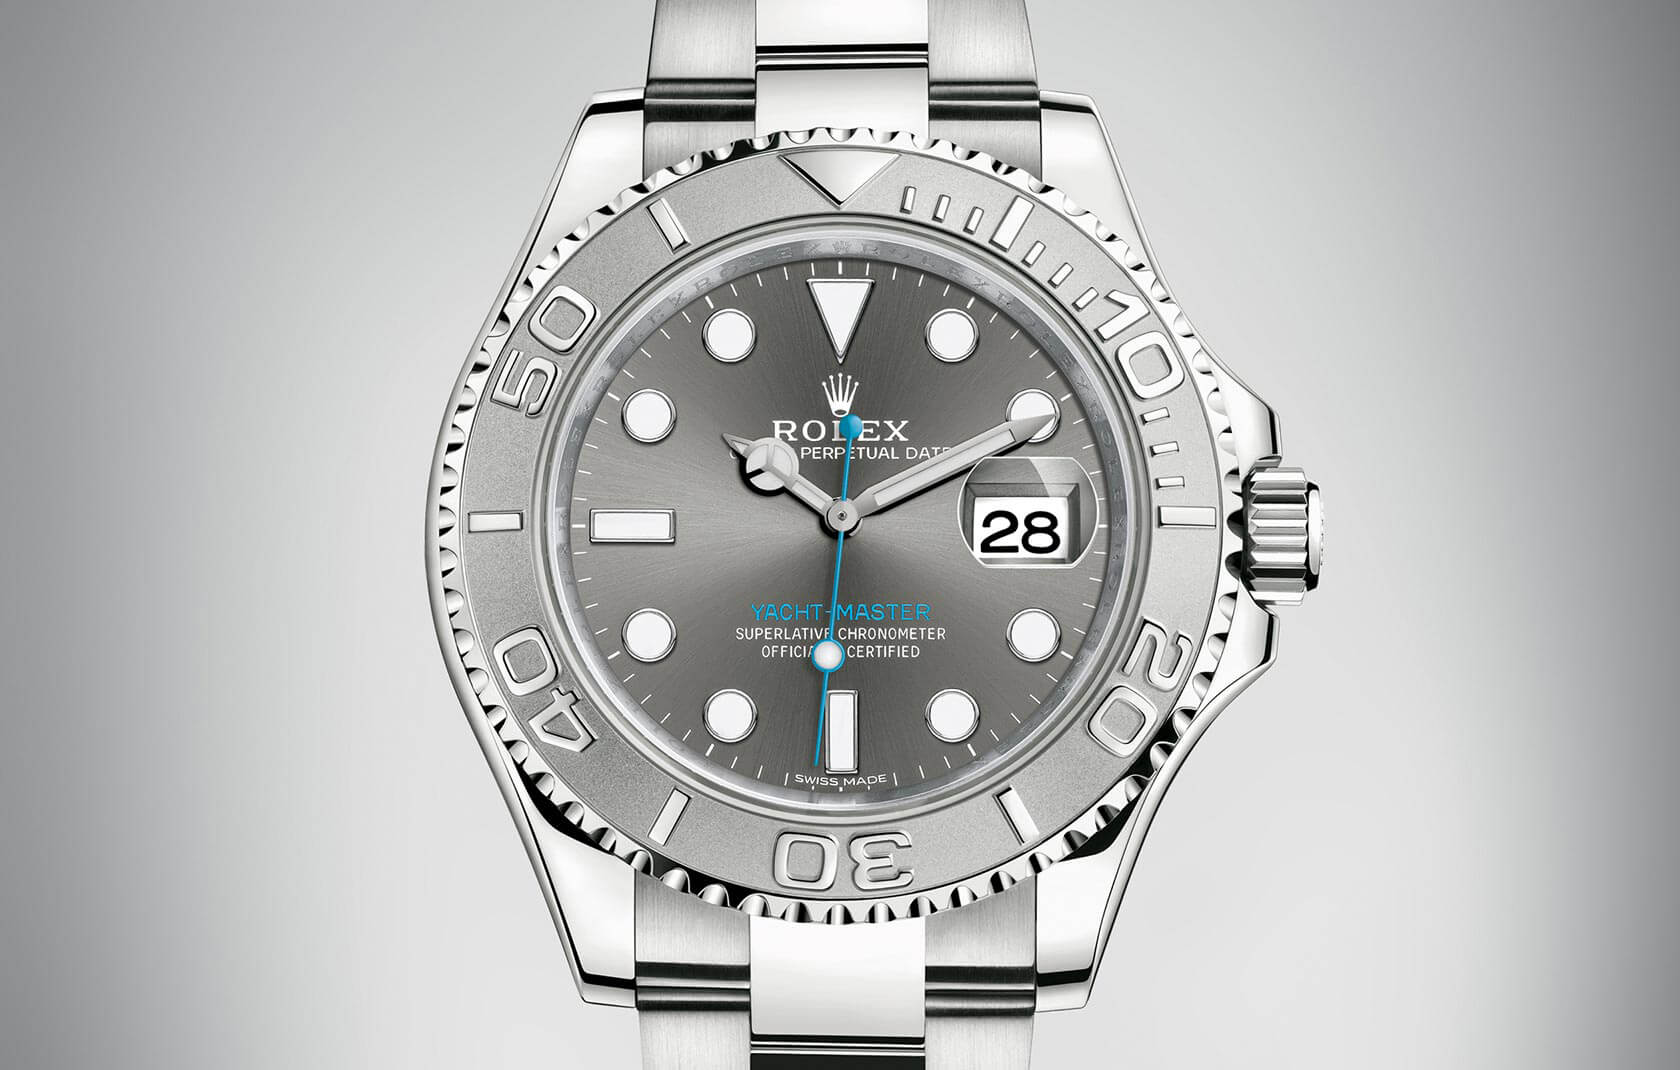 New 2016 model range for Rolex announced today ...